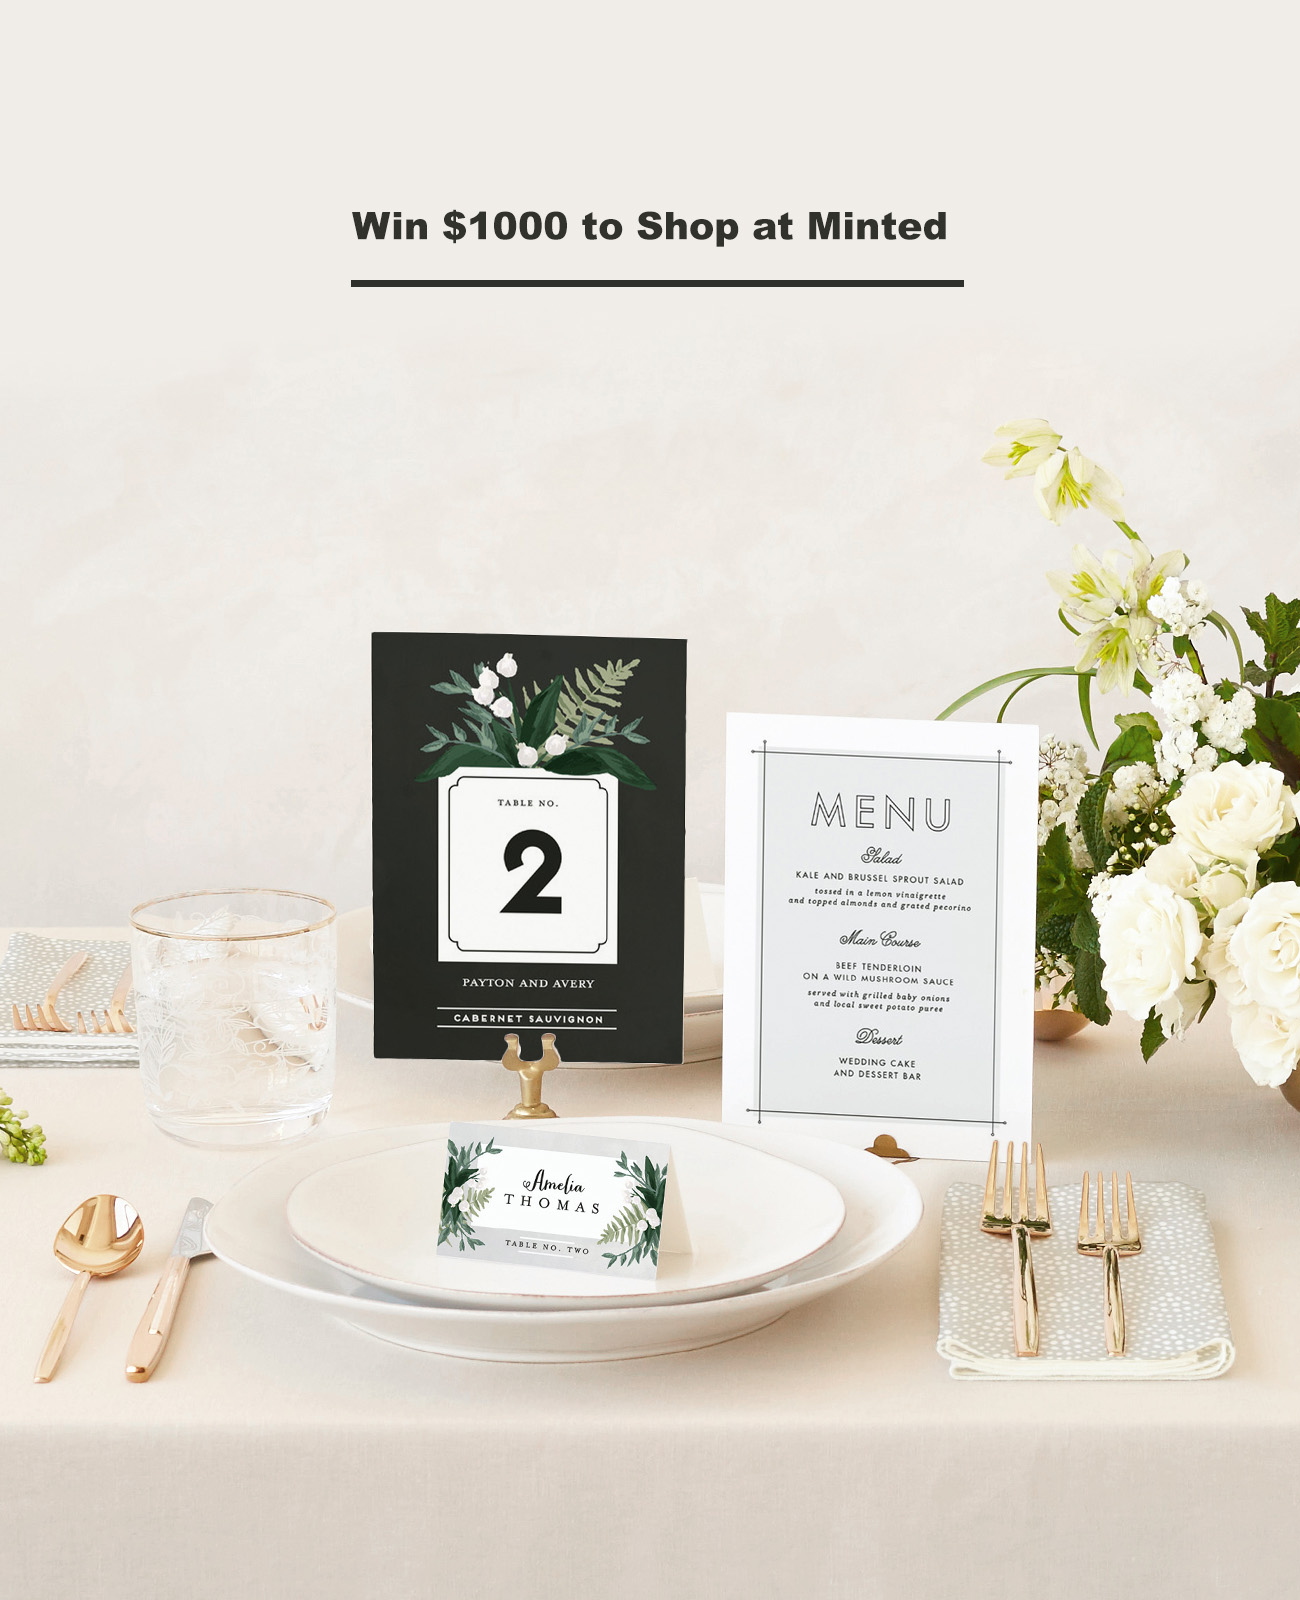 Win $1000 to shop at Minted